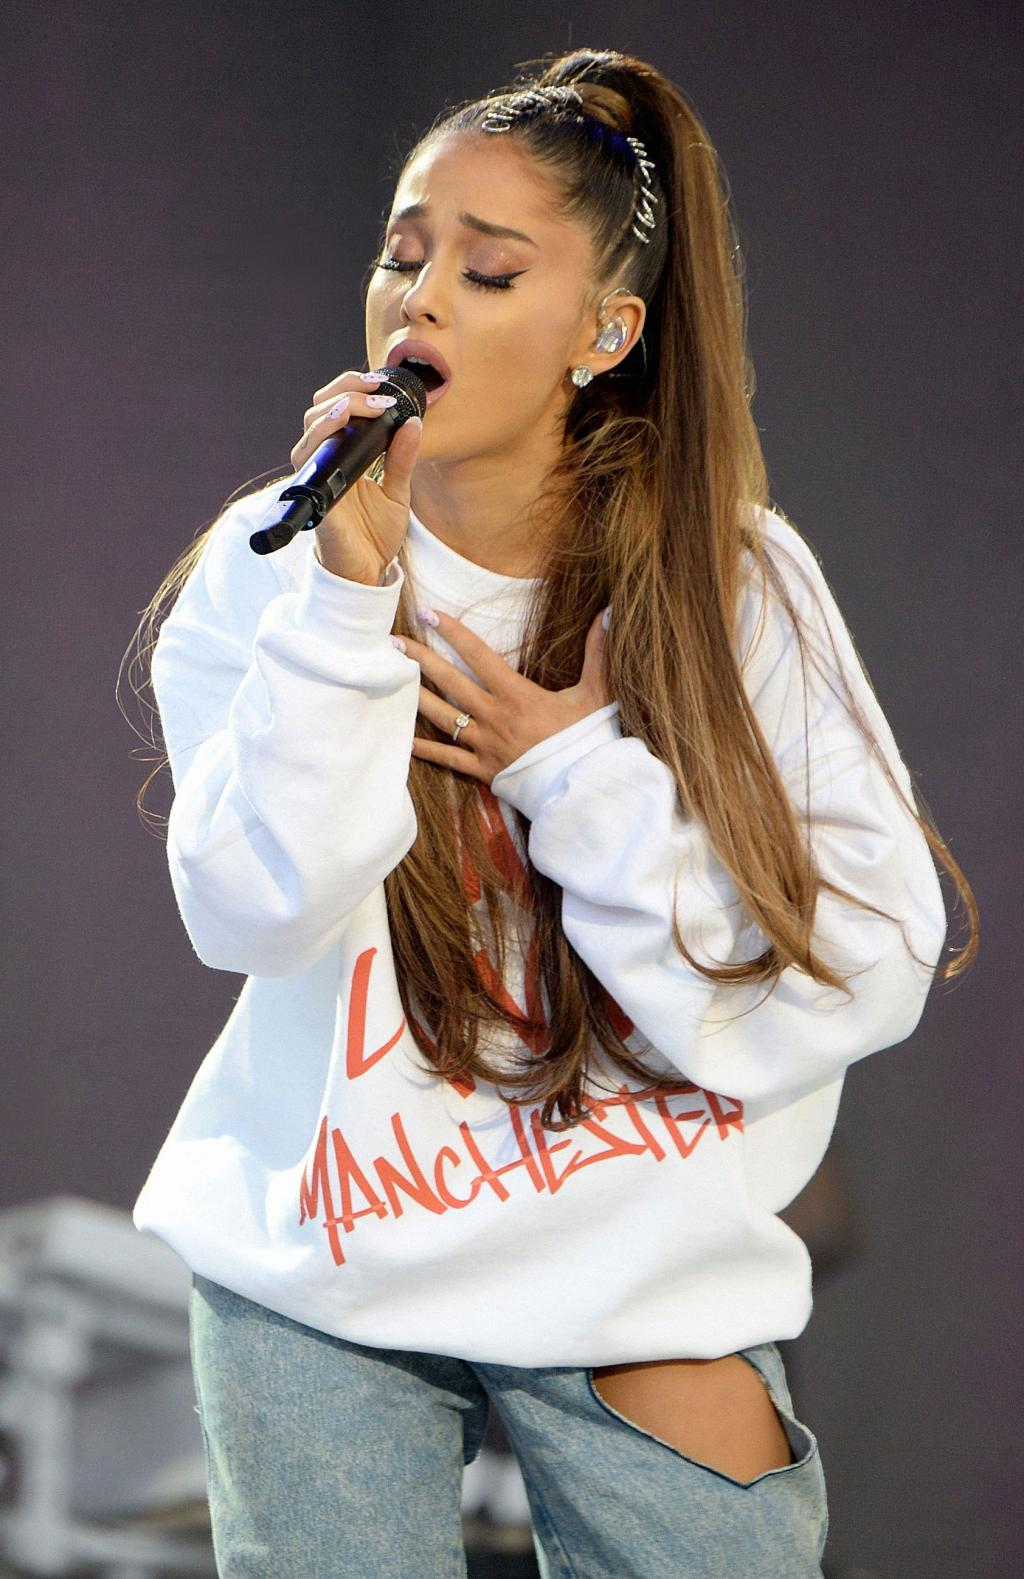 Ariana Grande Takes the Stage at Manchester Benefit Concert  '  12 Days After Deadly Attack